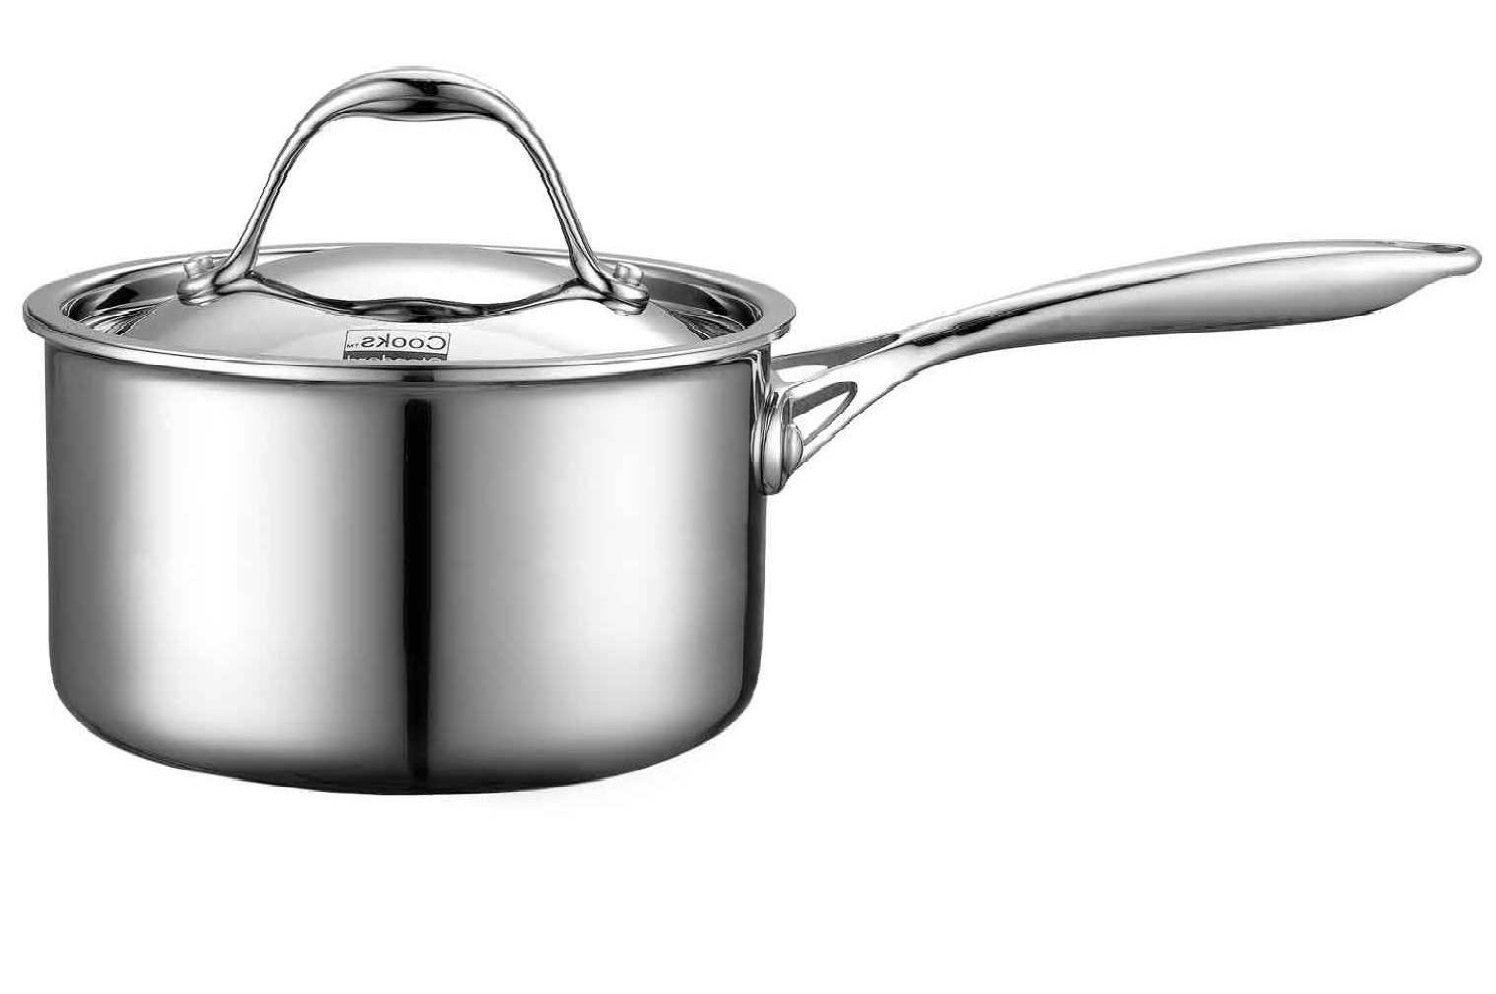 Cooks Standard NC-00217 Lid 1.5-Quart Multi-Ply Clad Stainless Steel Saucepan 1-1/2-Quart Silver